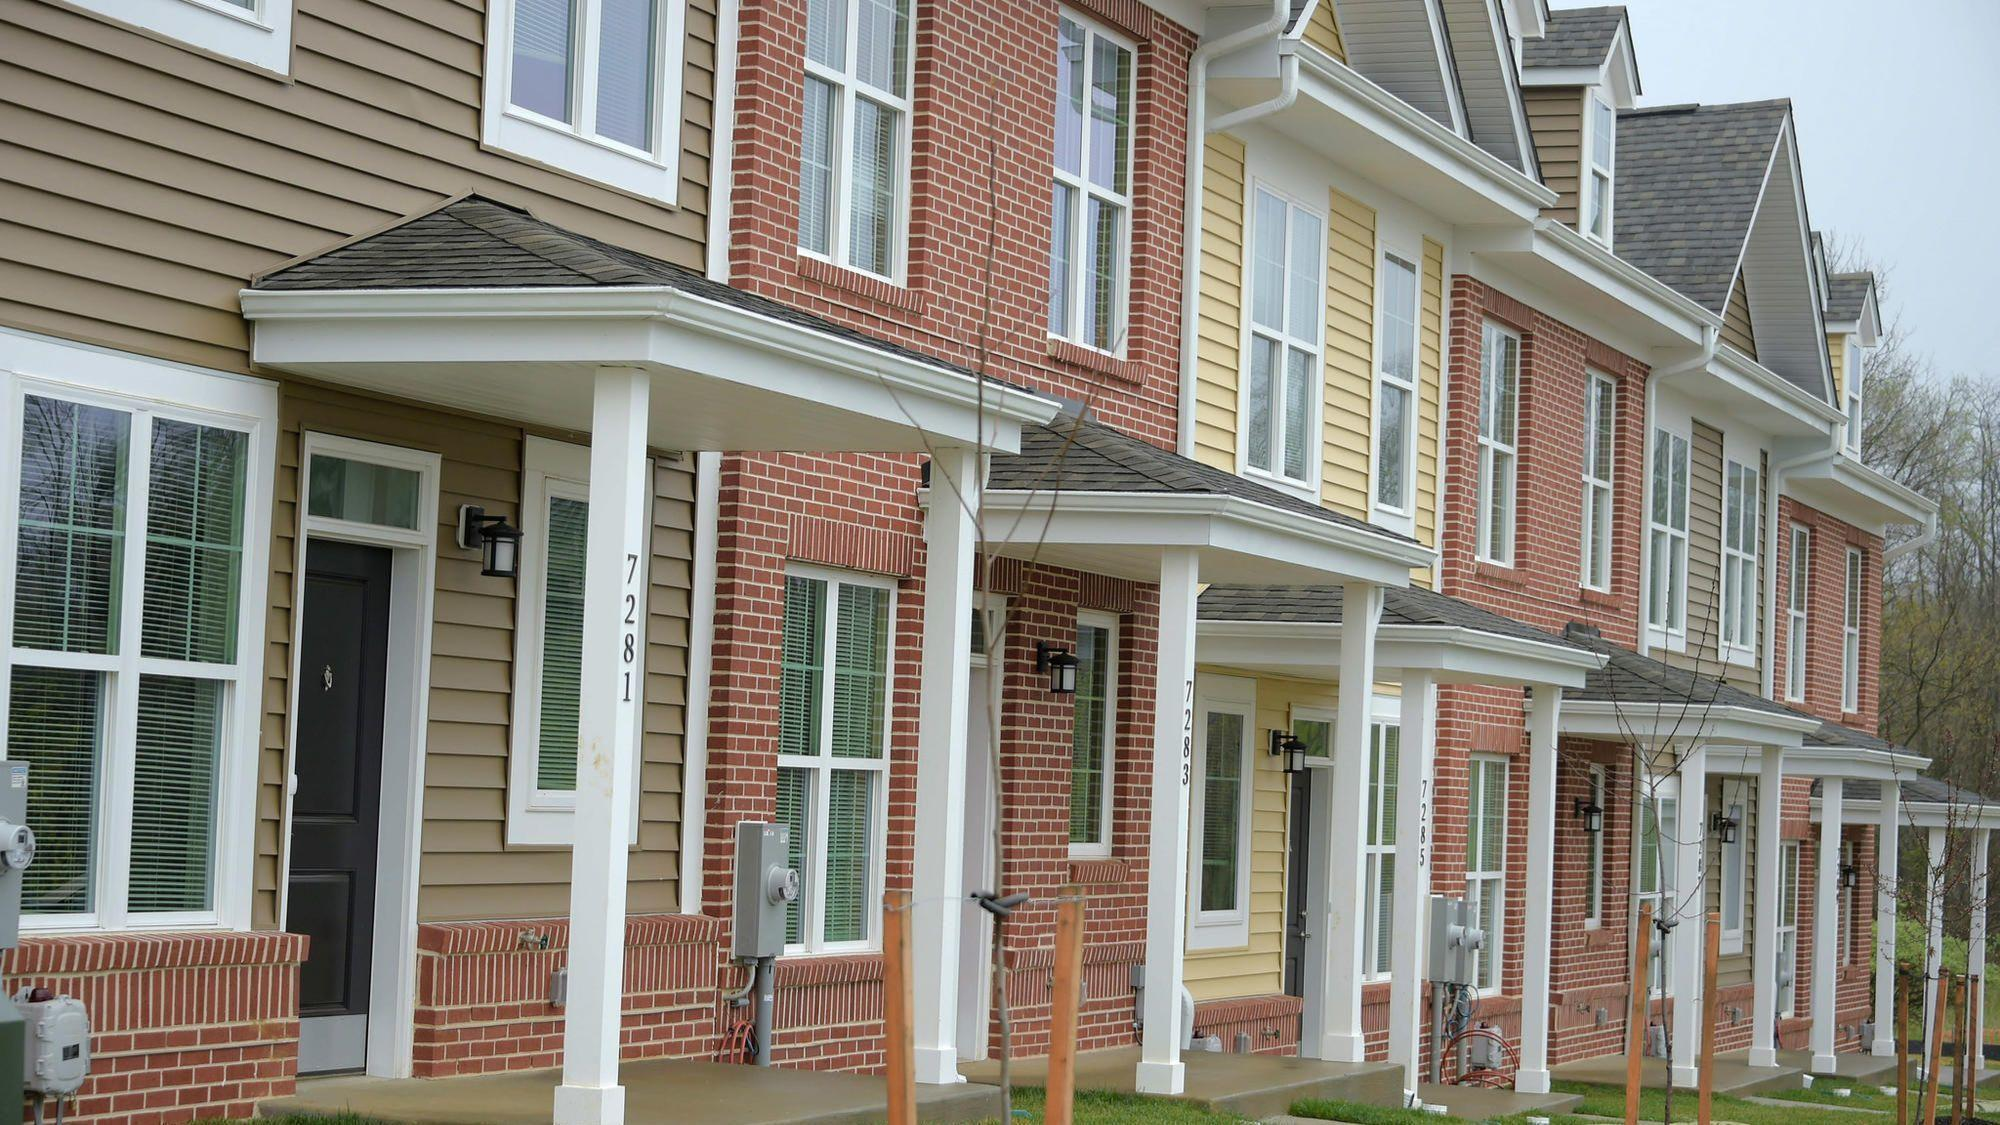 Stupendous Affordable Housing Quota Is Increasing In Baltimore County Home Interior And Landscaping Dextoversignezvosmurscom